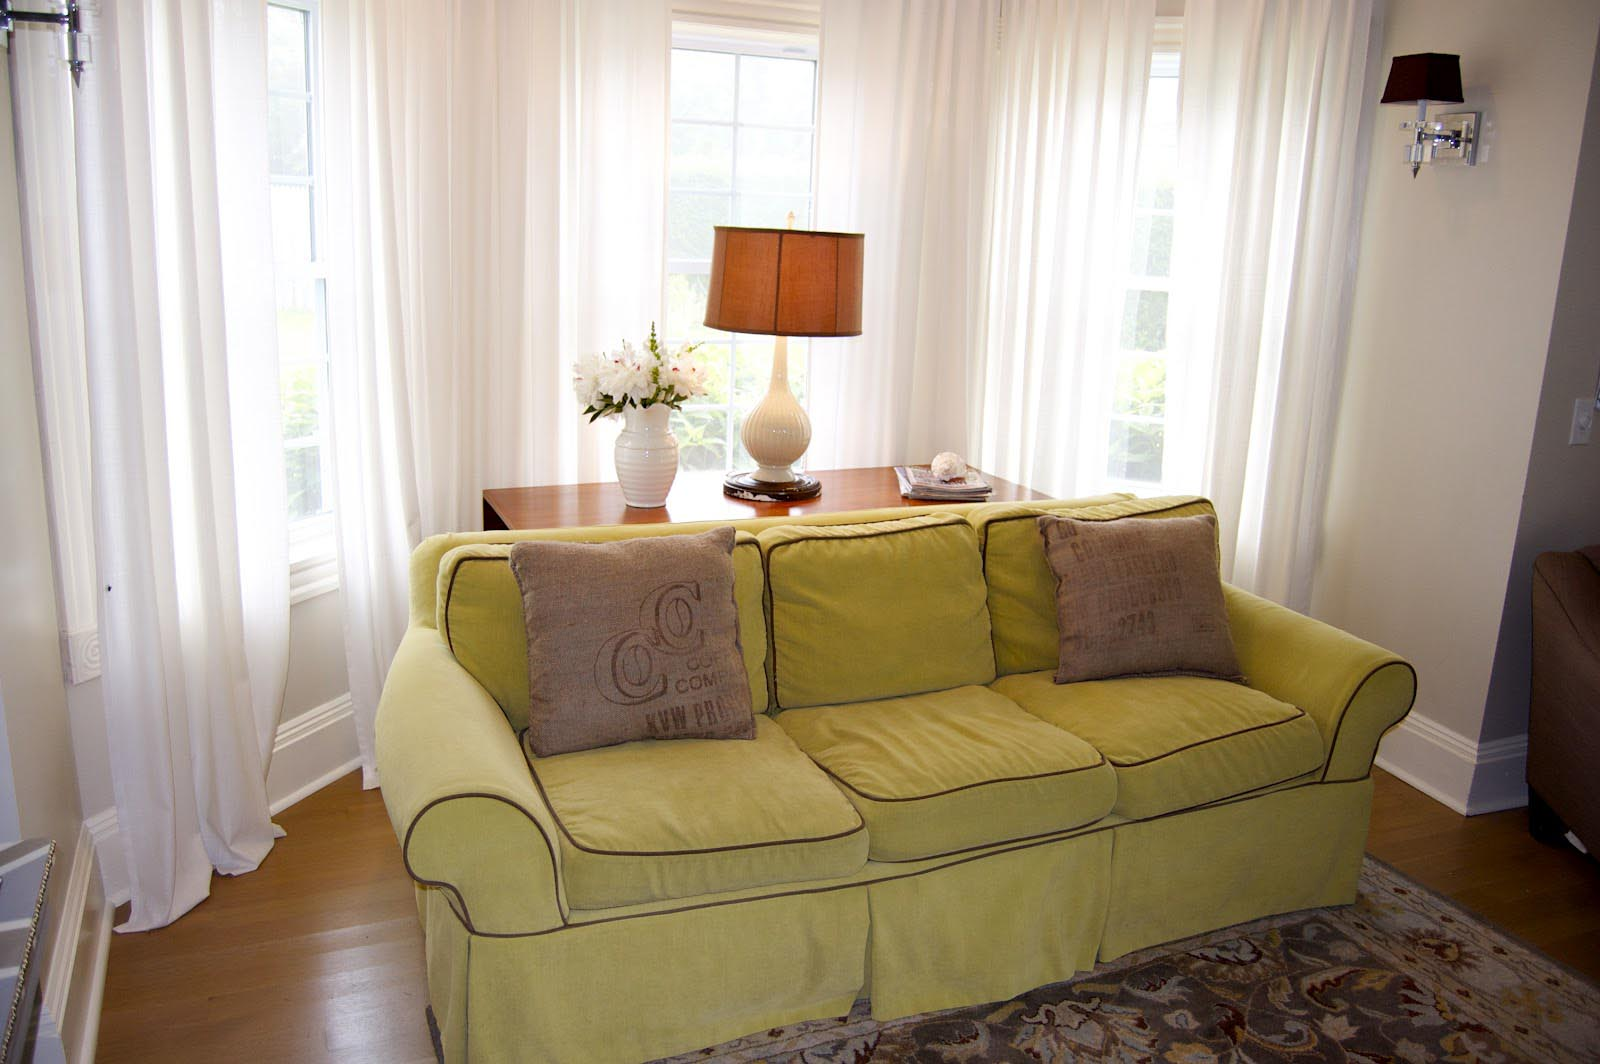 Living room bay window treatments window treatments for Window treatments bedroom ideas